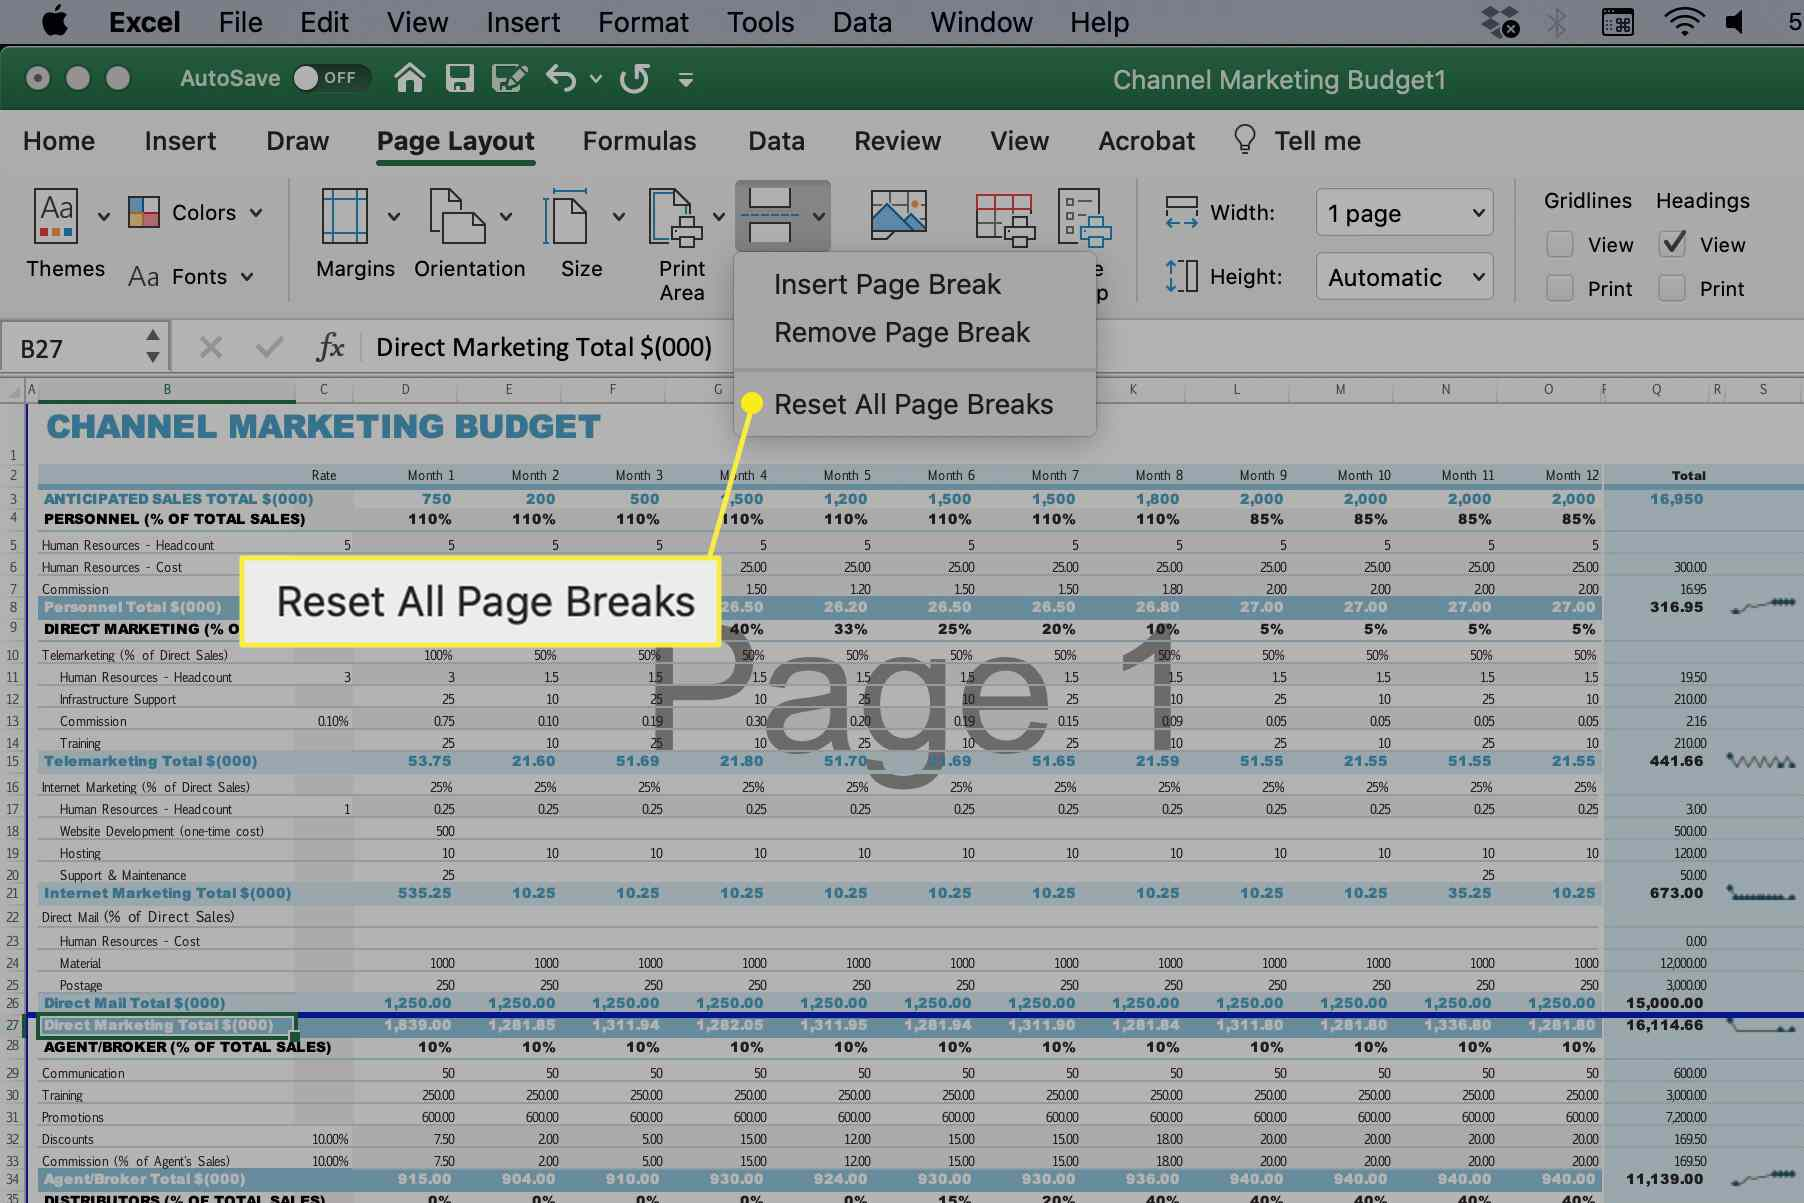 Reset All Page Breaks